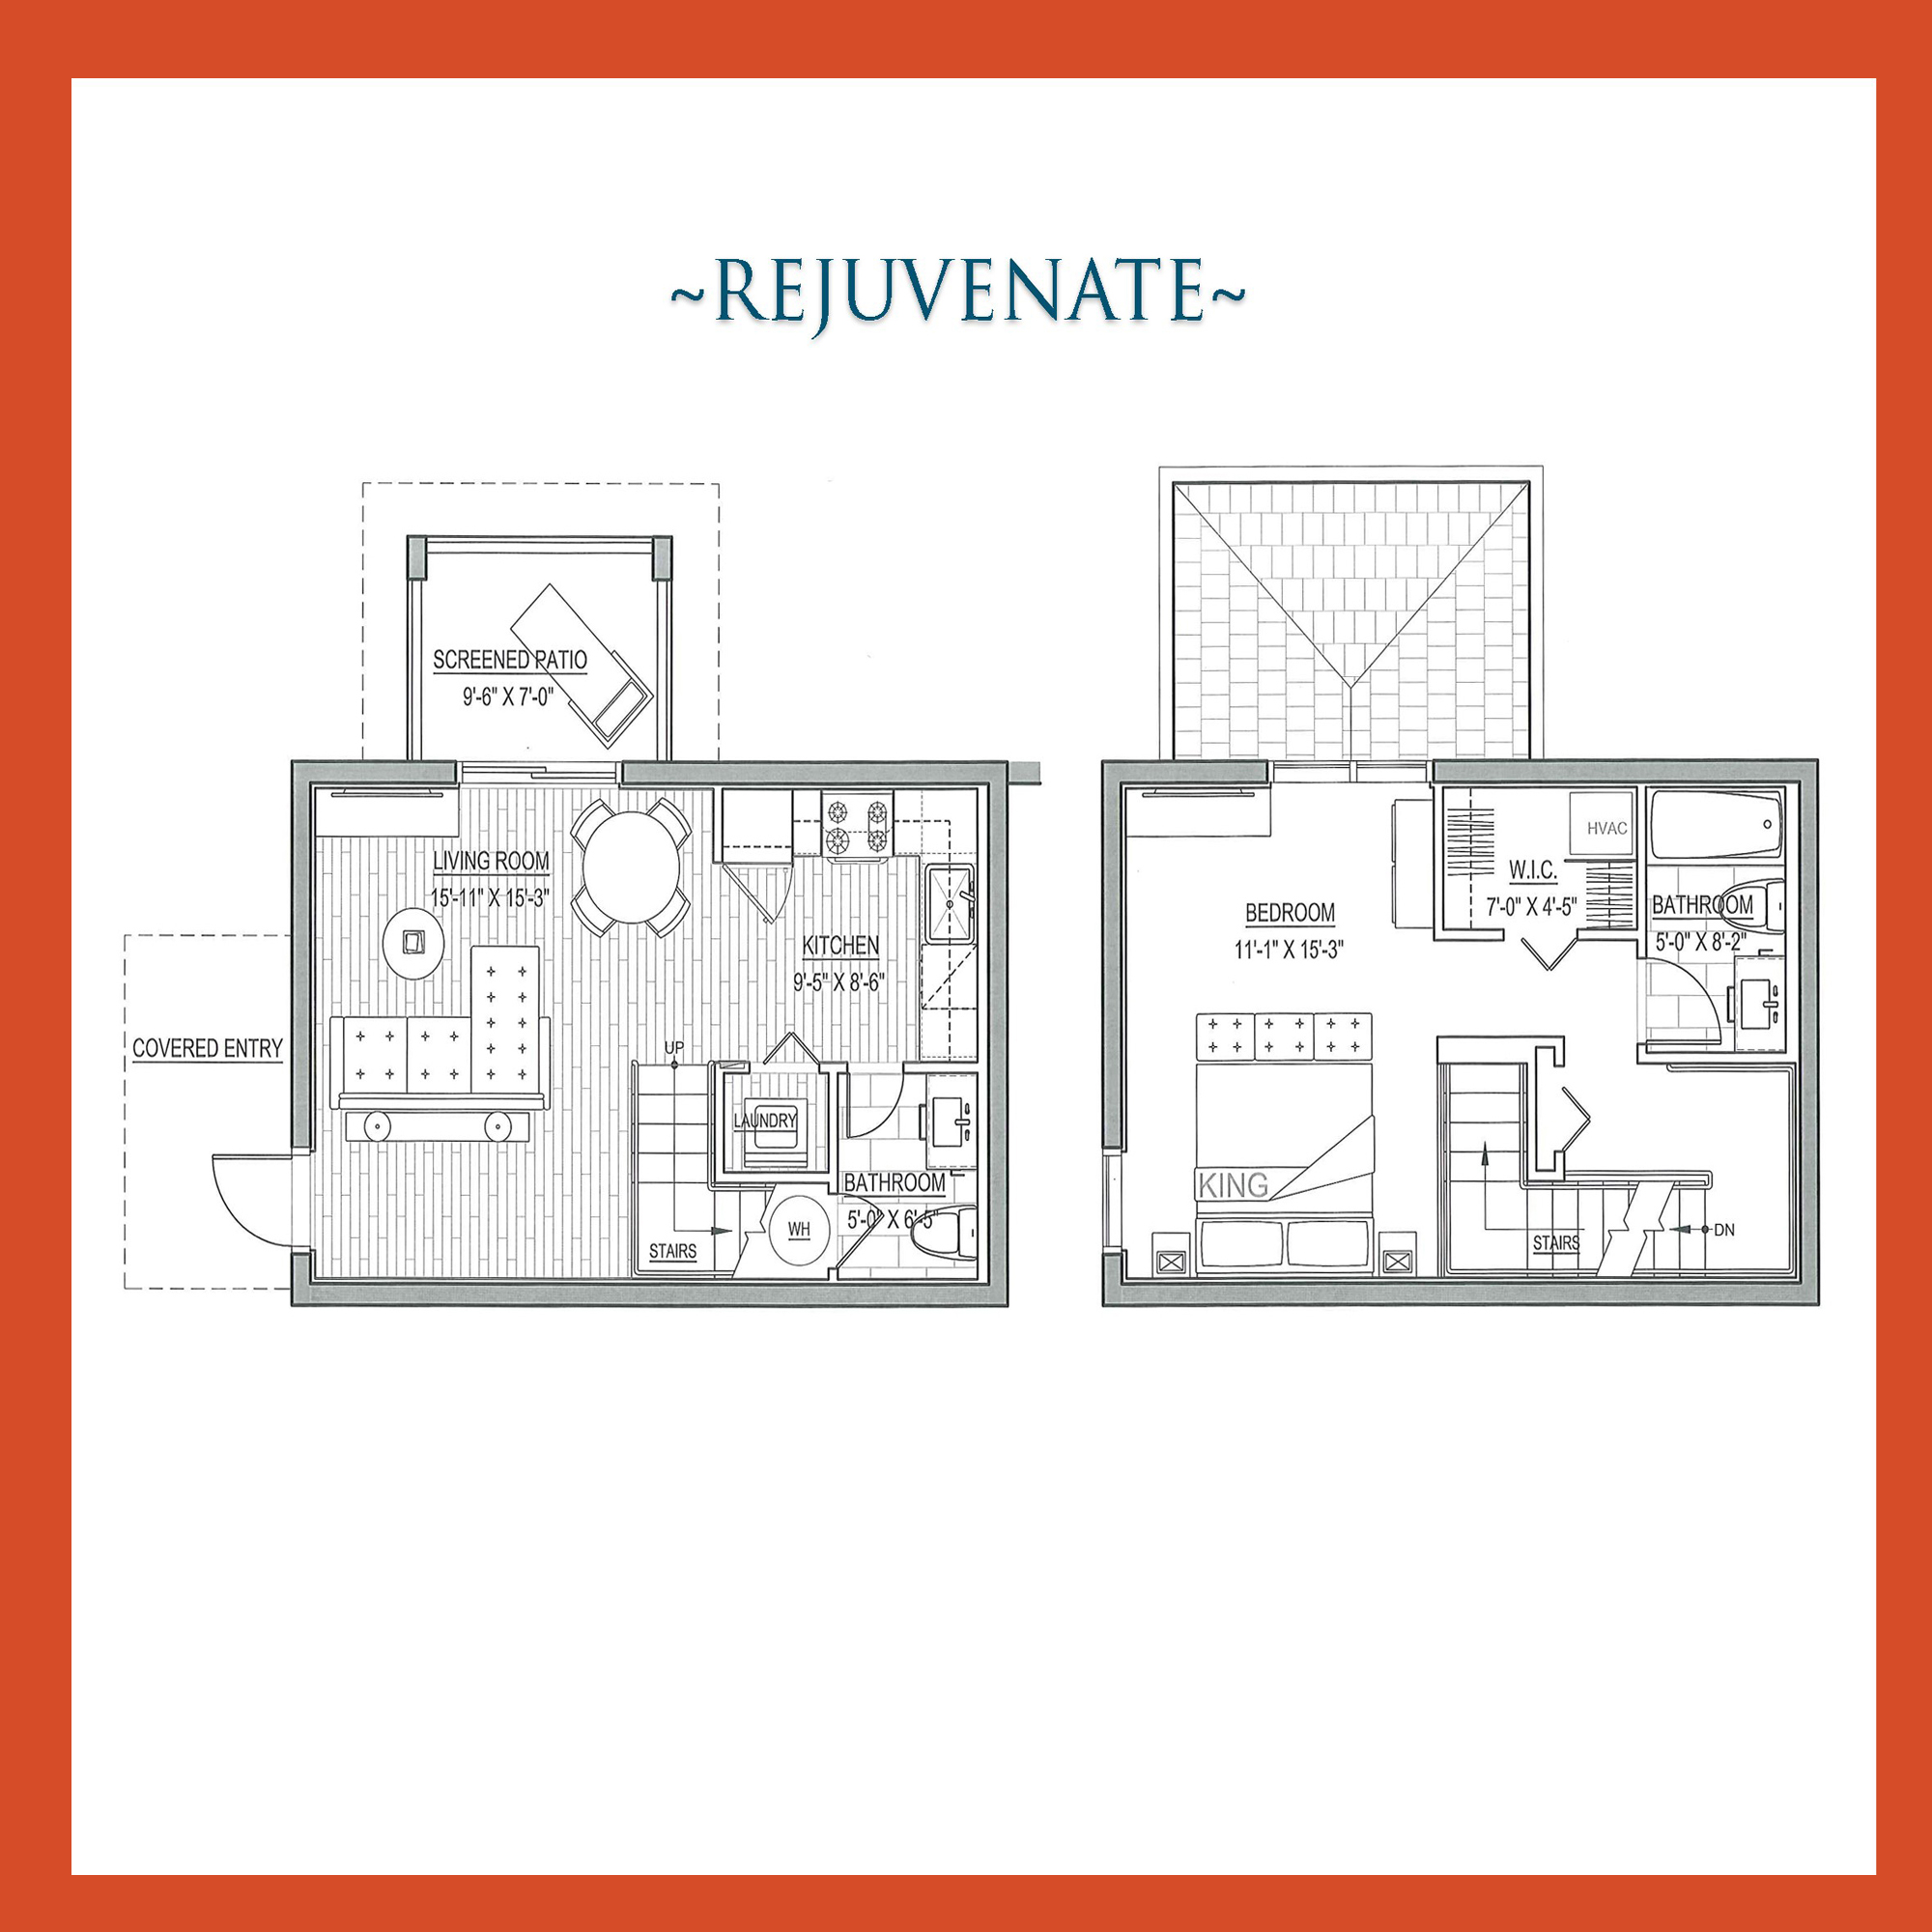 Rejuvenate Townhome